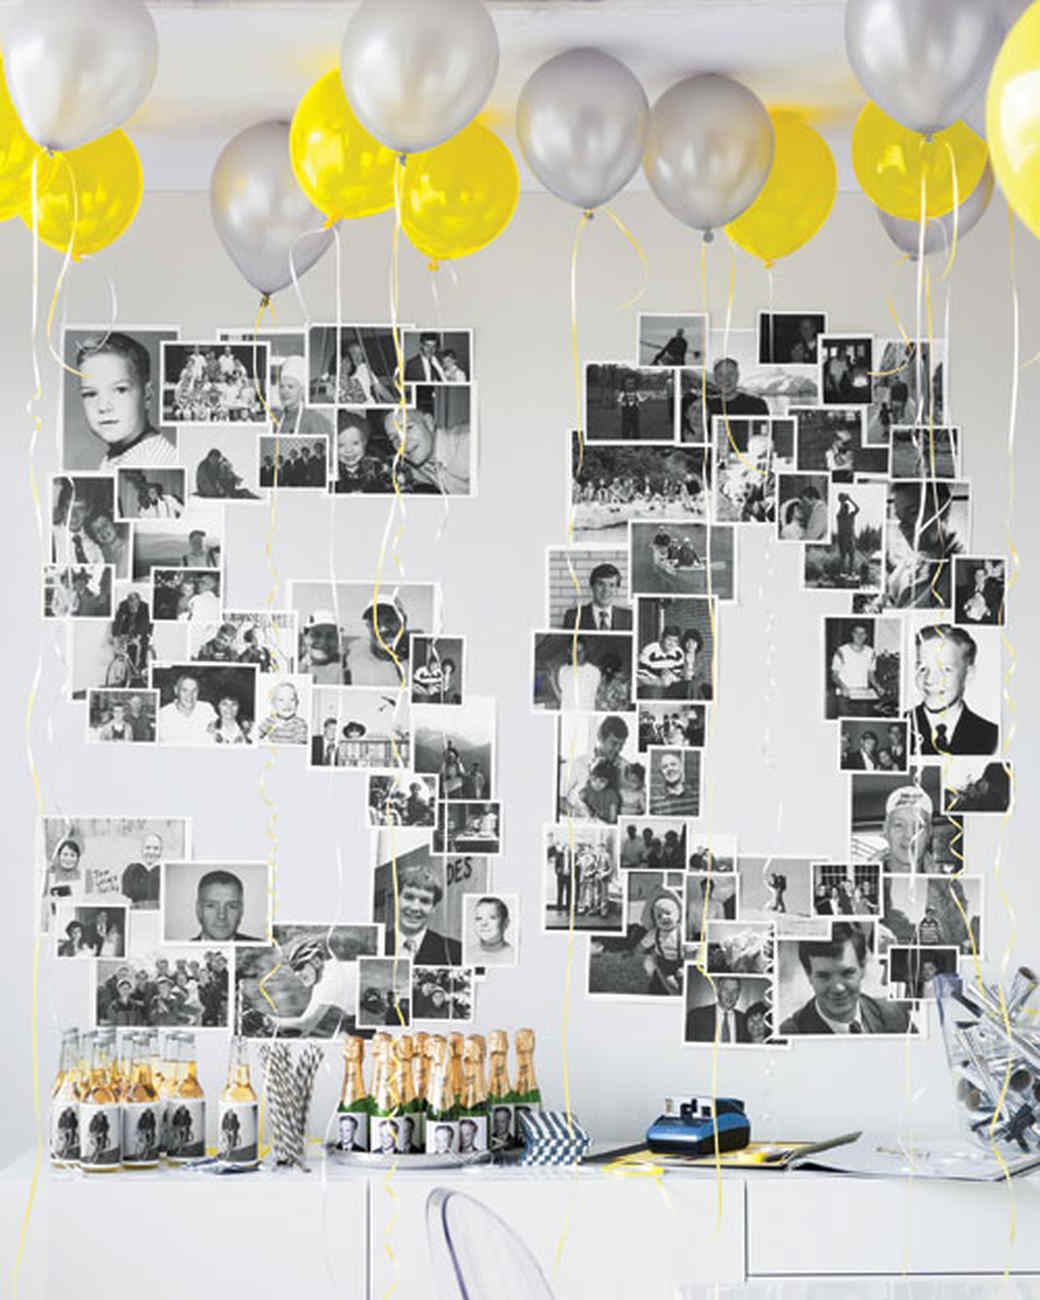 12 Classy Birthday Party Themes for Adults | Birthday Party, Birthday Party Ideas, Birthday Party Themes, Party Ideas, Birthday Party Ideas, Party Planning, Party Planning Ideas